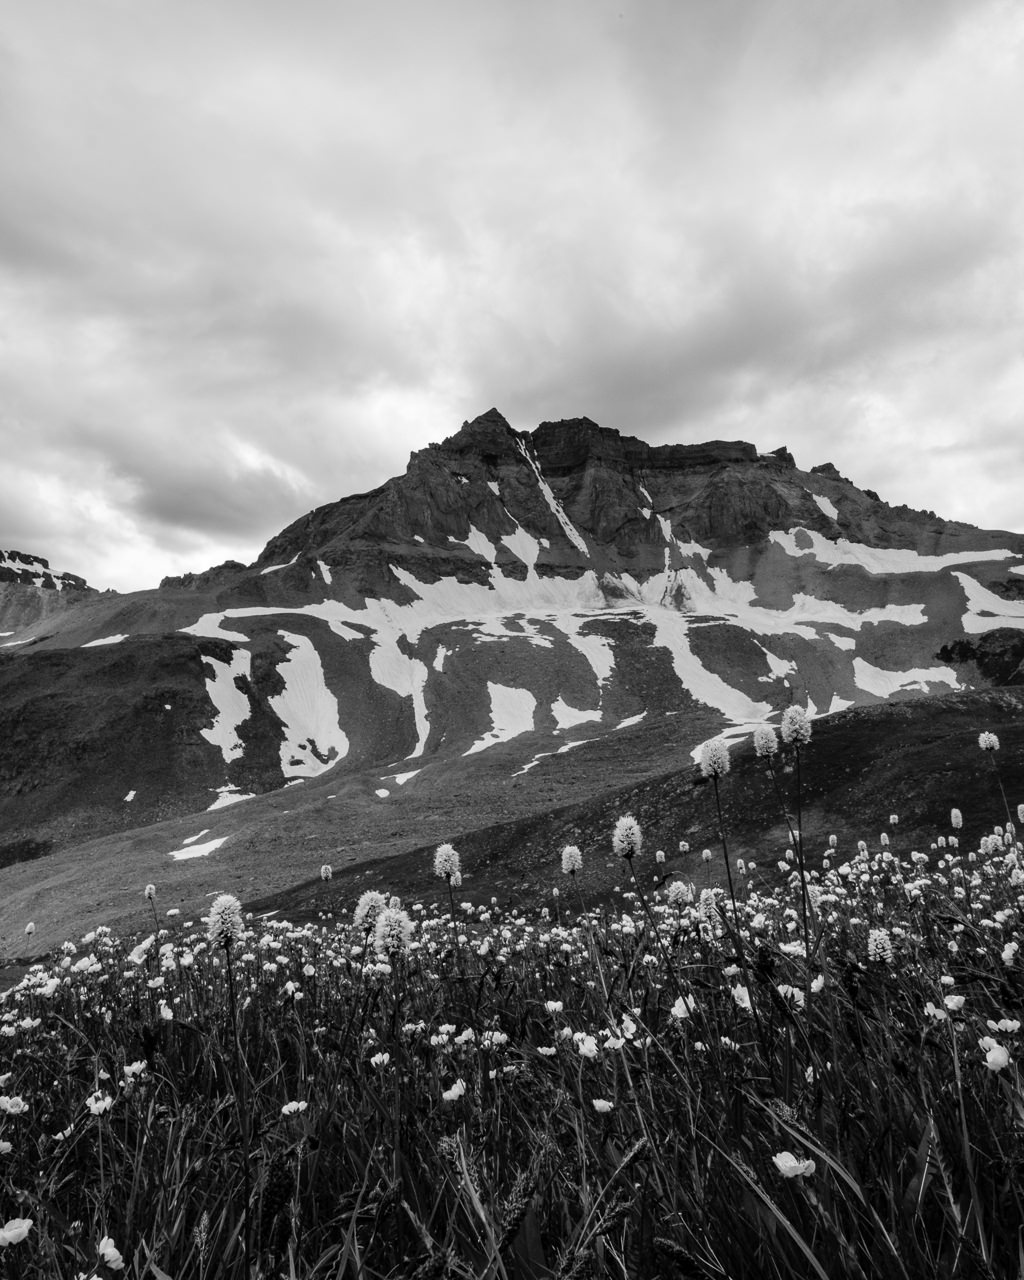 Day 237 - 365 Day B&W Photo Challenge - Wildflowers leading up to Mt. Sneffels - X-T3, XF14mm f/2.8, Acros R Film Simulation